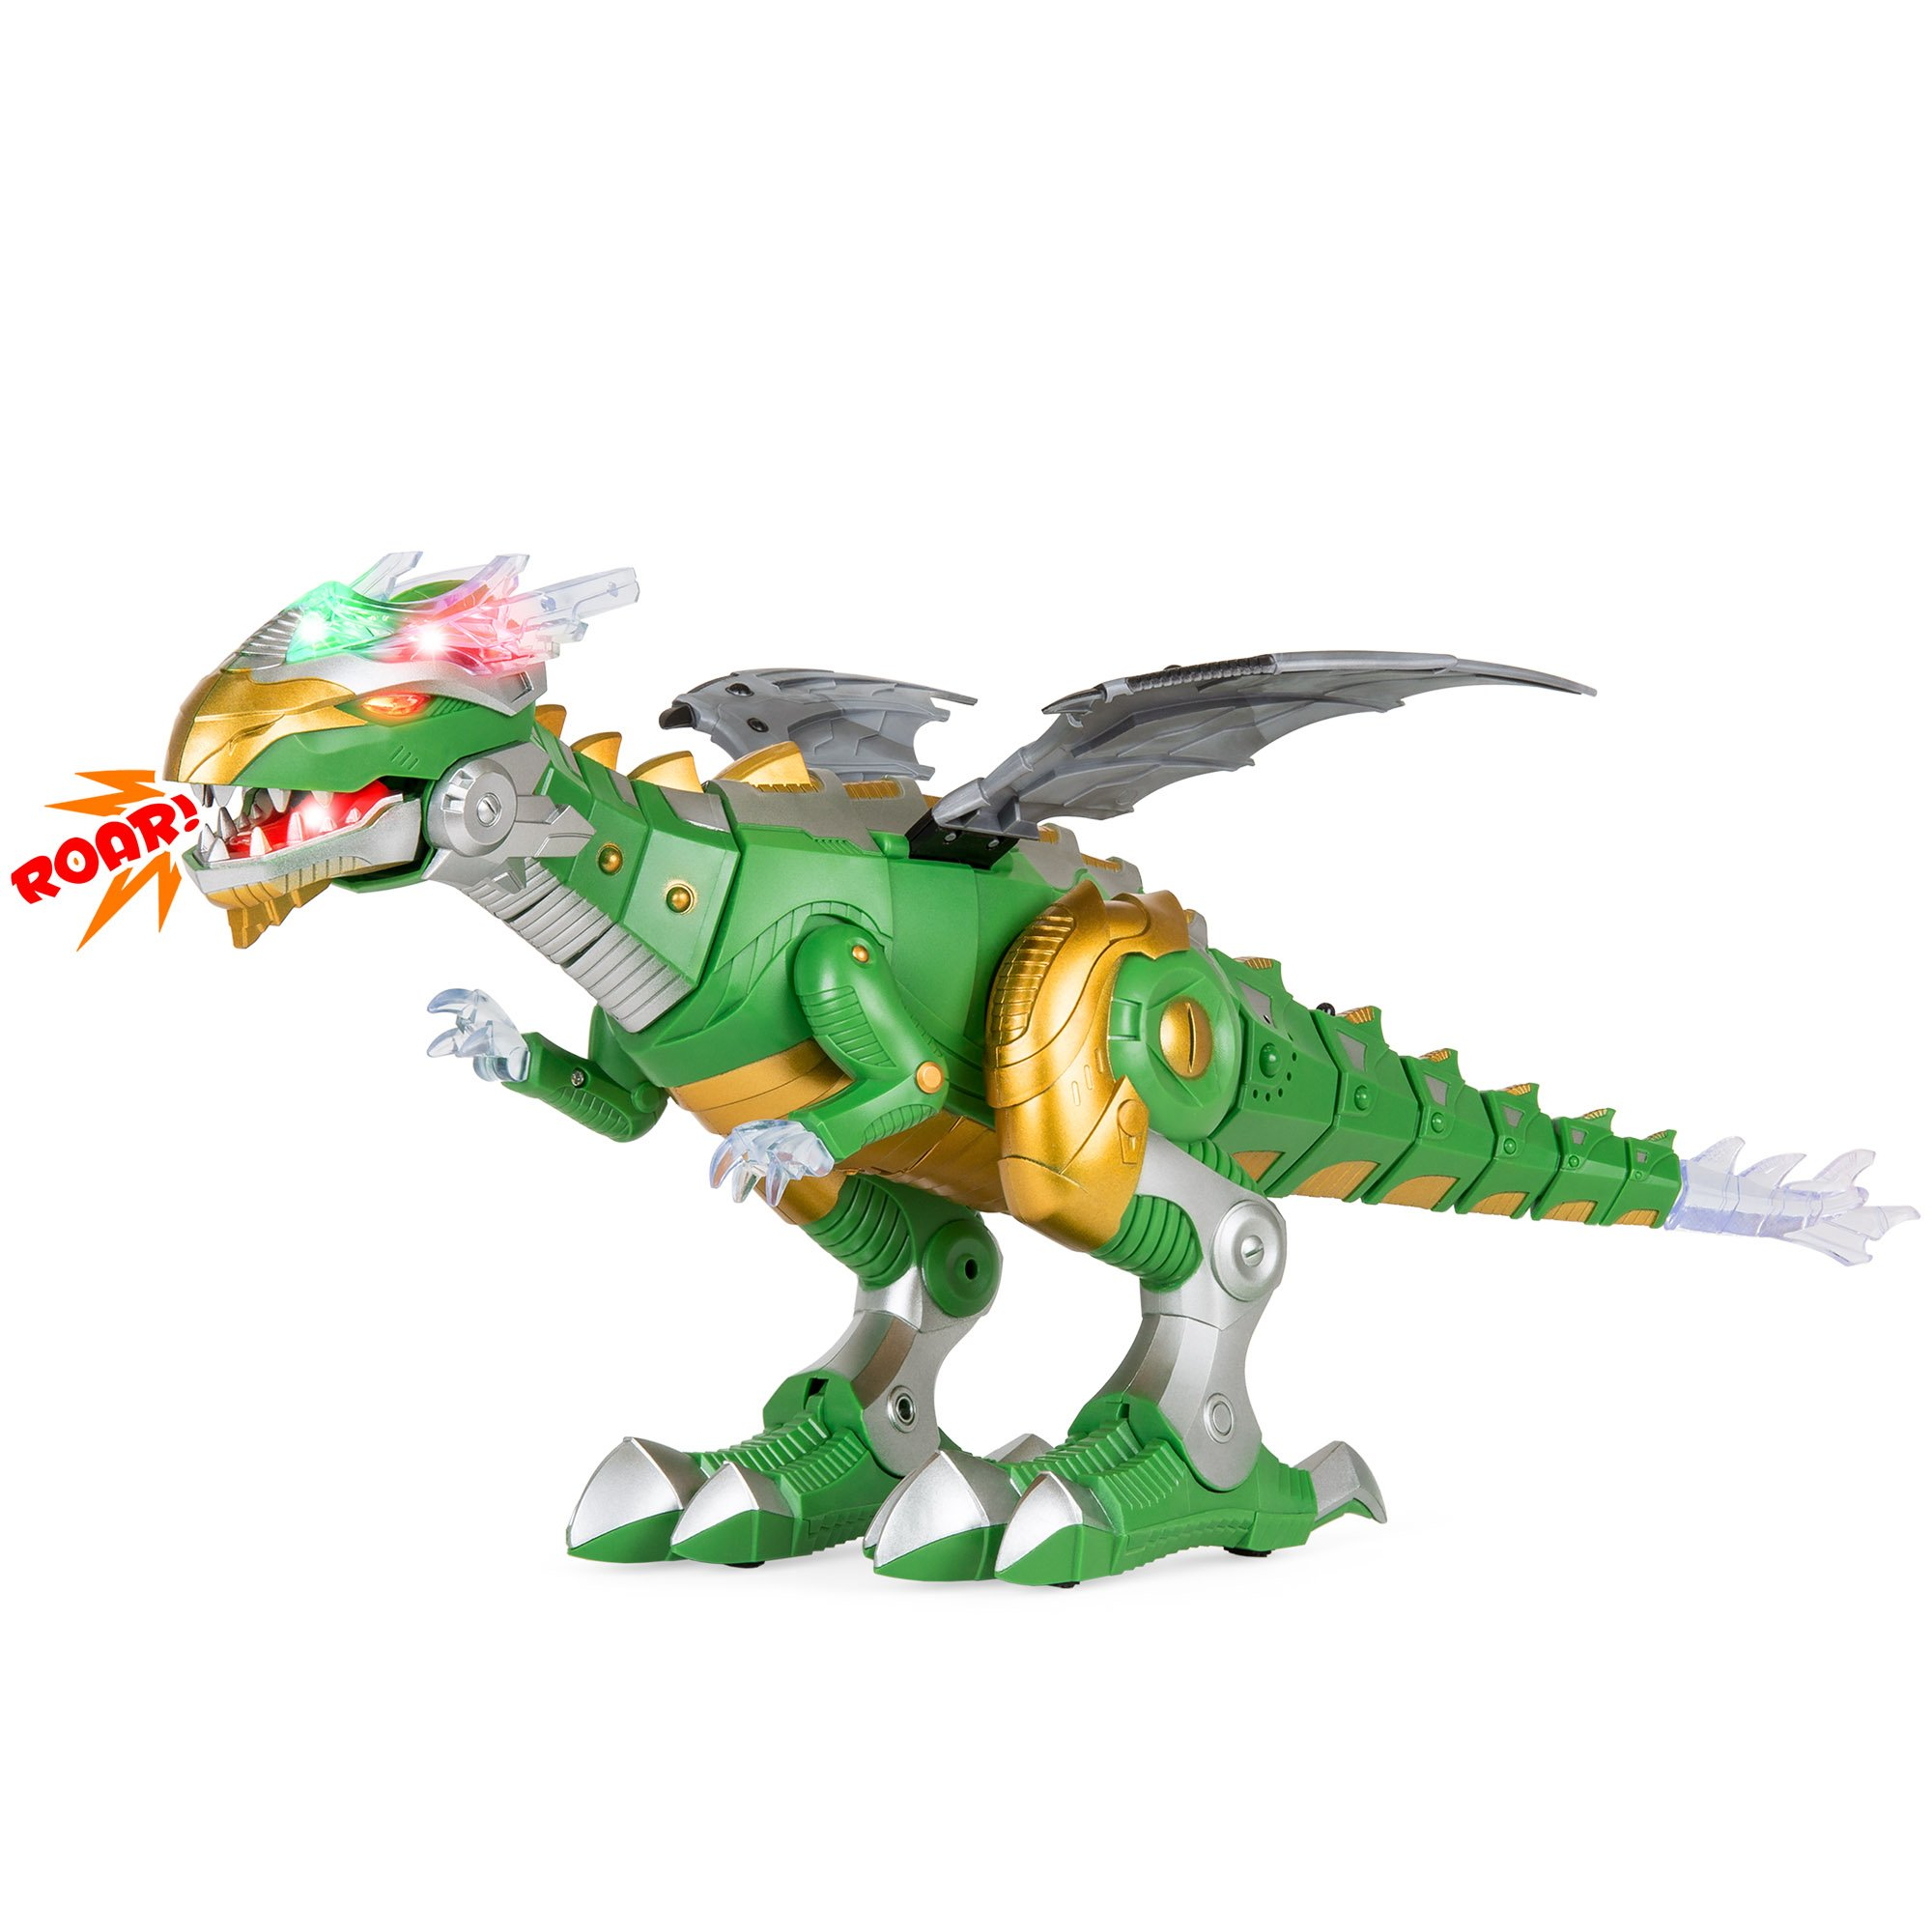 Best Choice Products Kids Walking Dragon Dinosaur Robot Toy w/ Lights, Moving Wings, Sound - Green